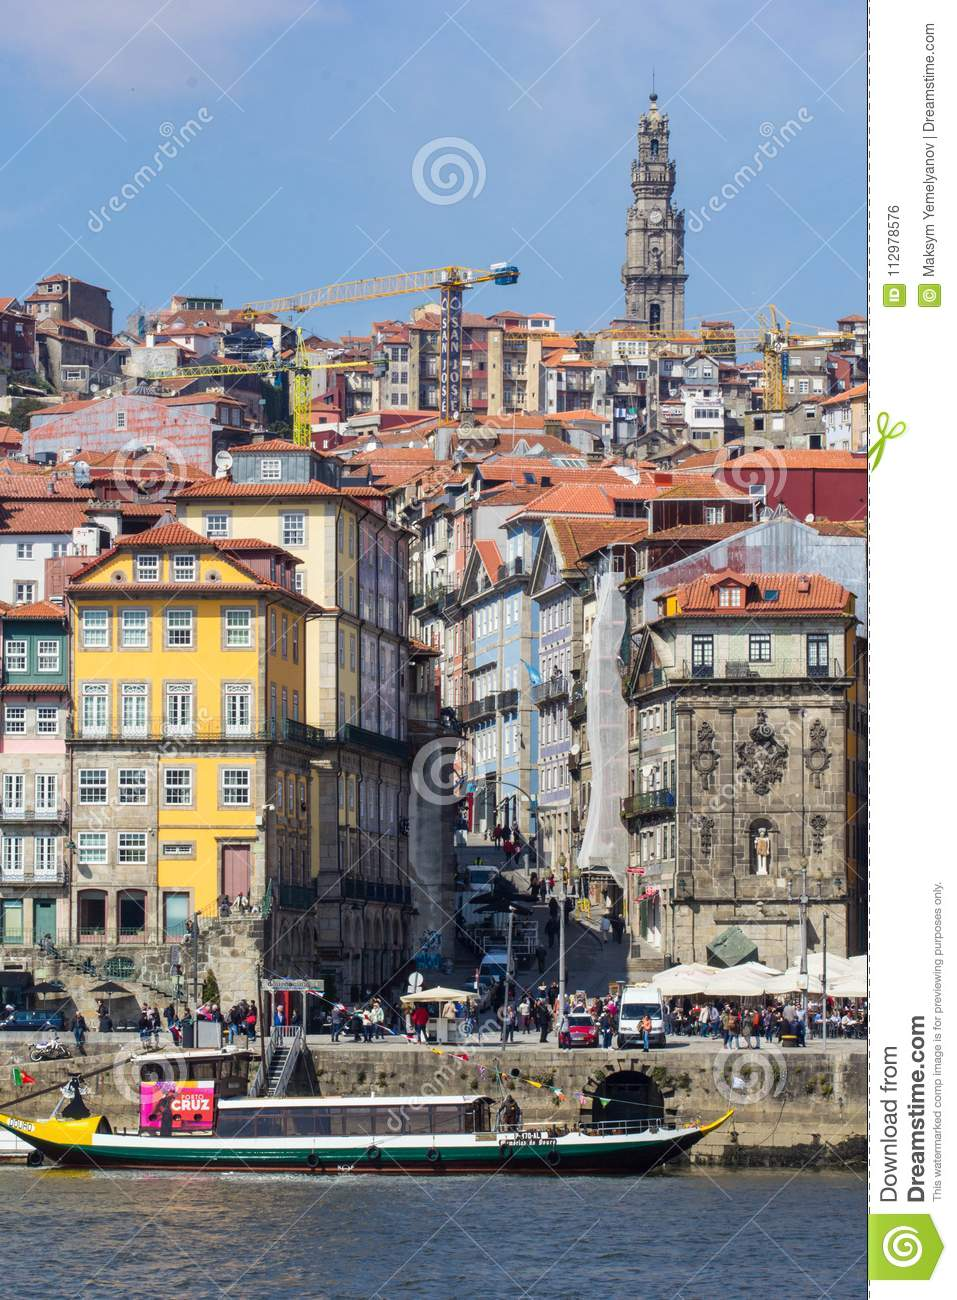 Old town of Porto with river, Portugal